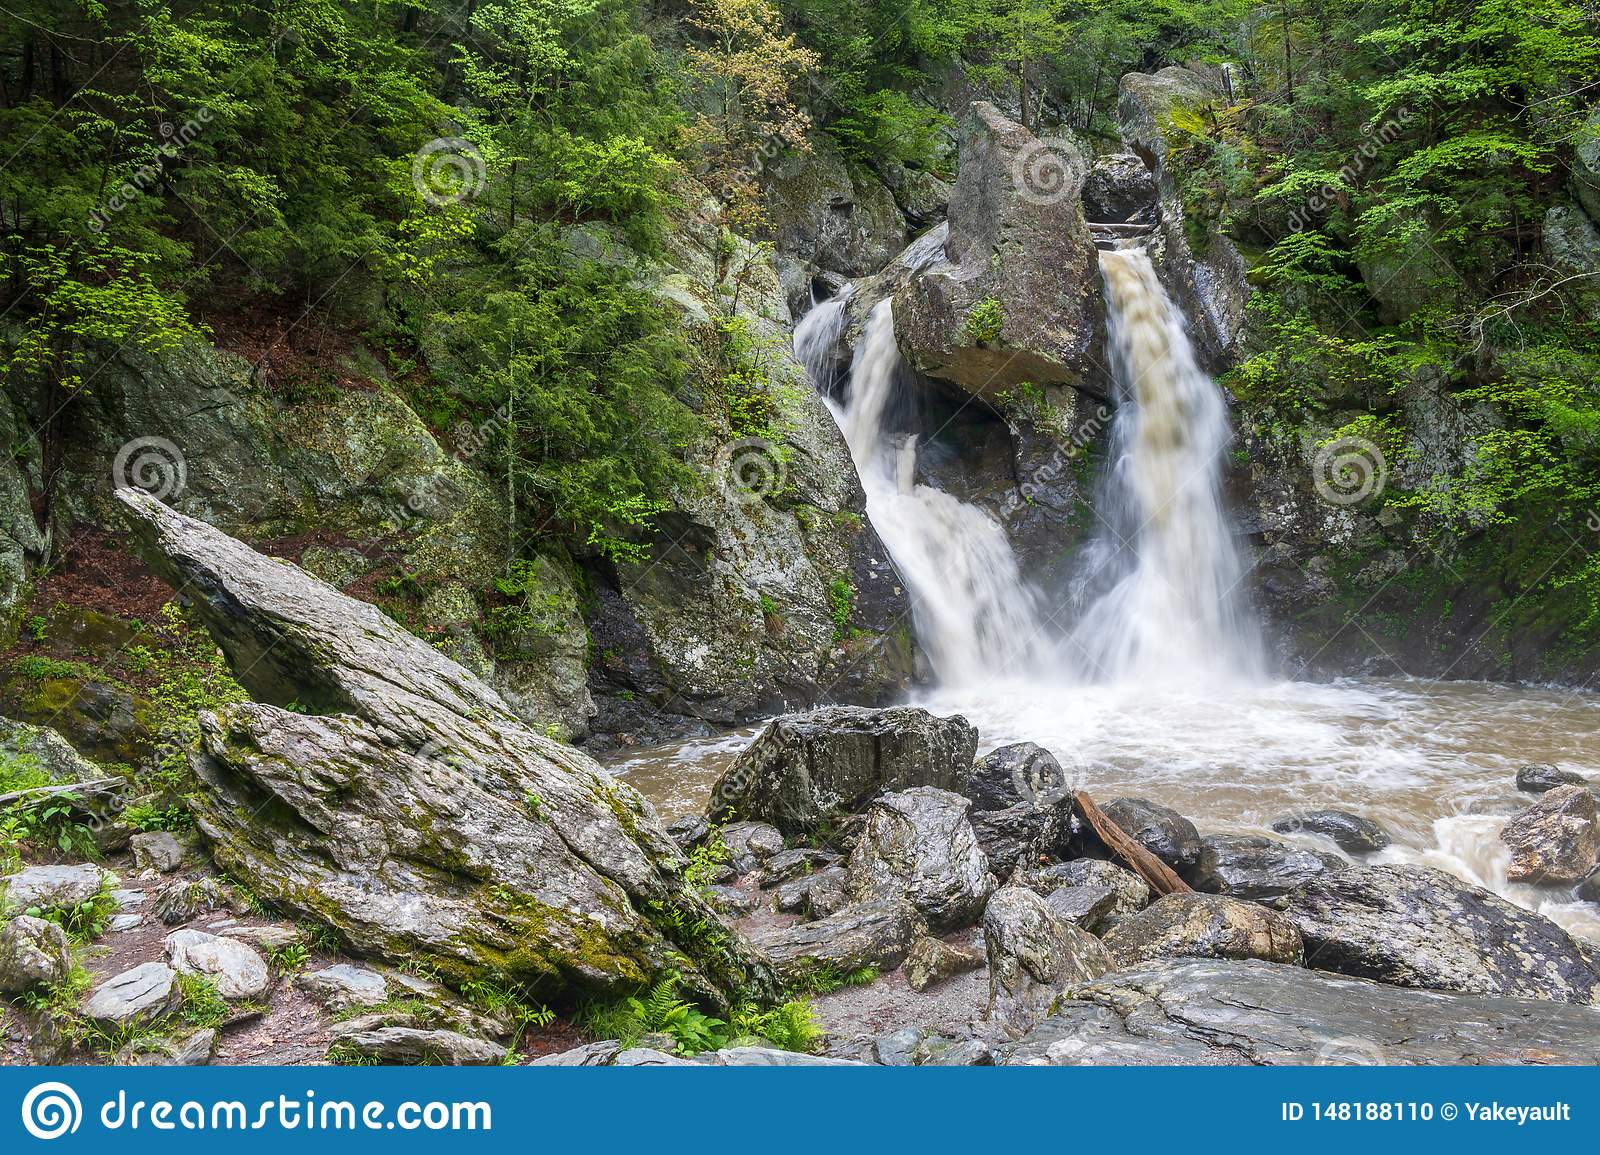 Bash Bish Falls with a large pointed rock